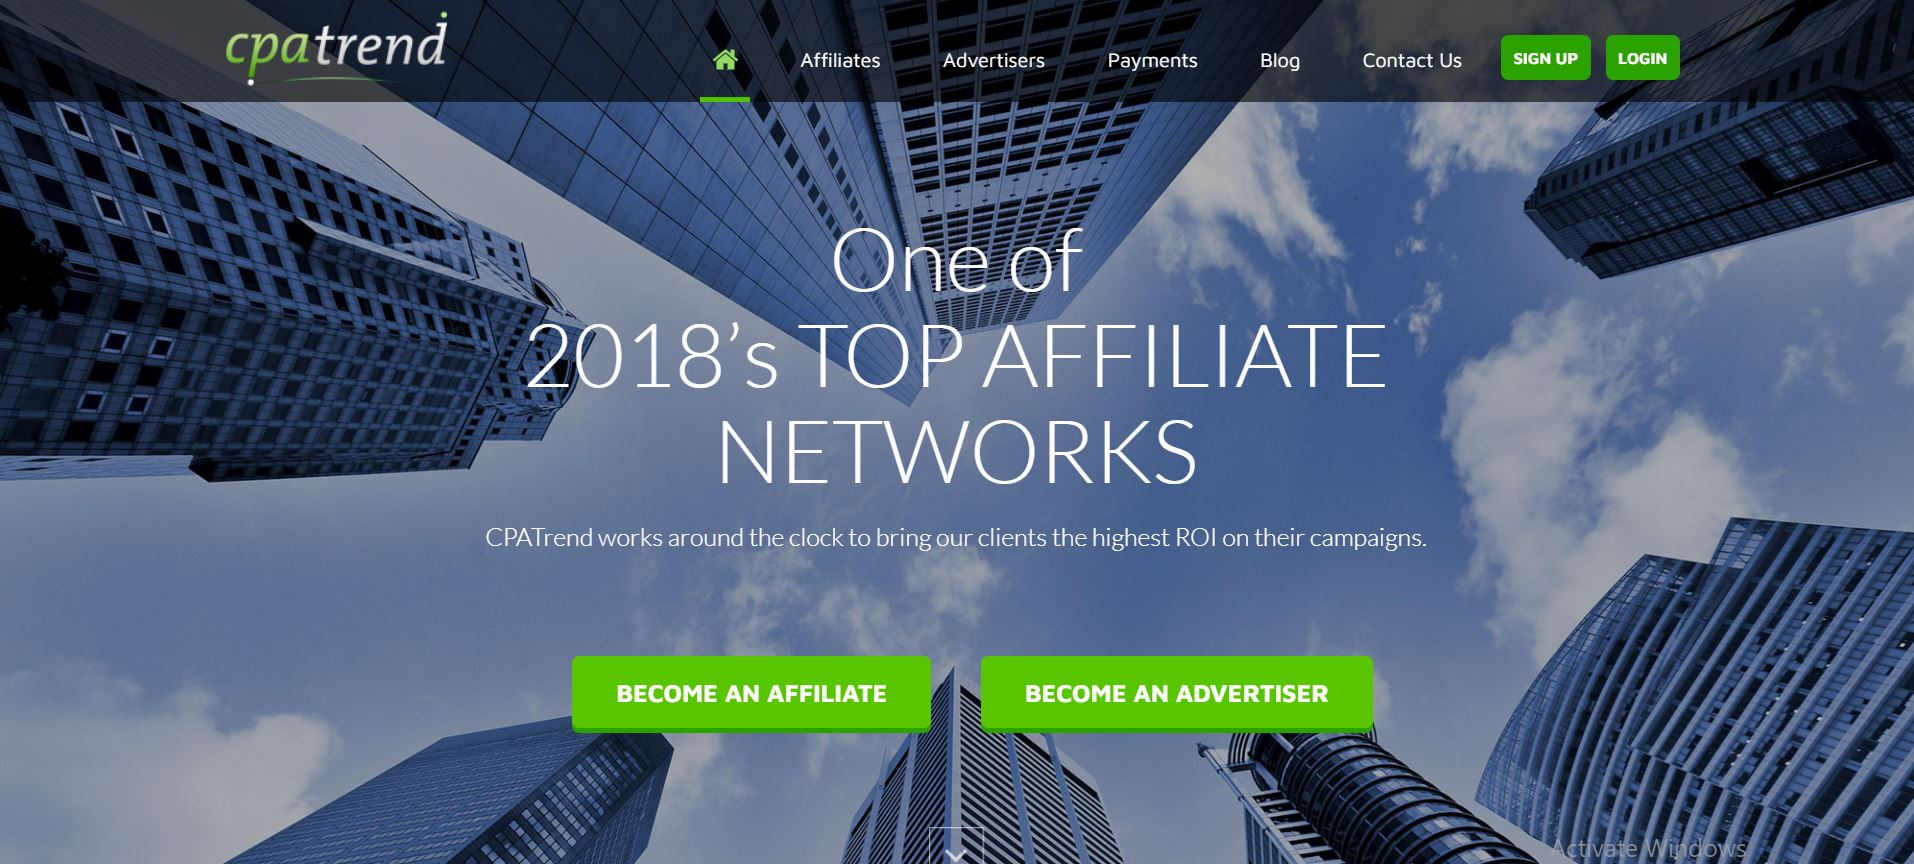 CPA Marketing Network #8. CPATrend